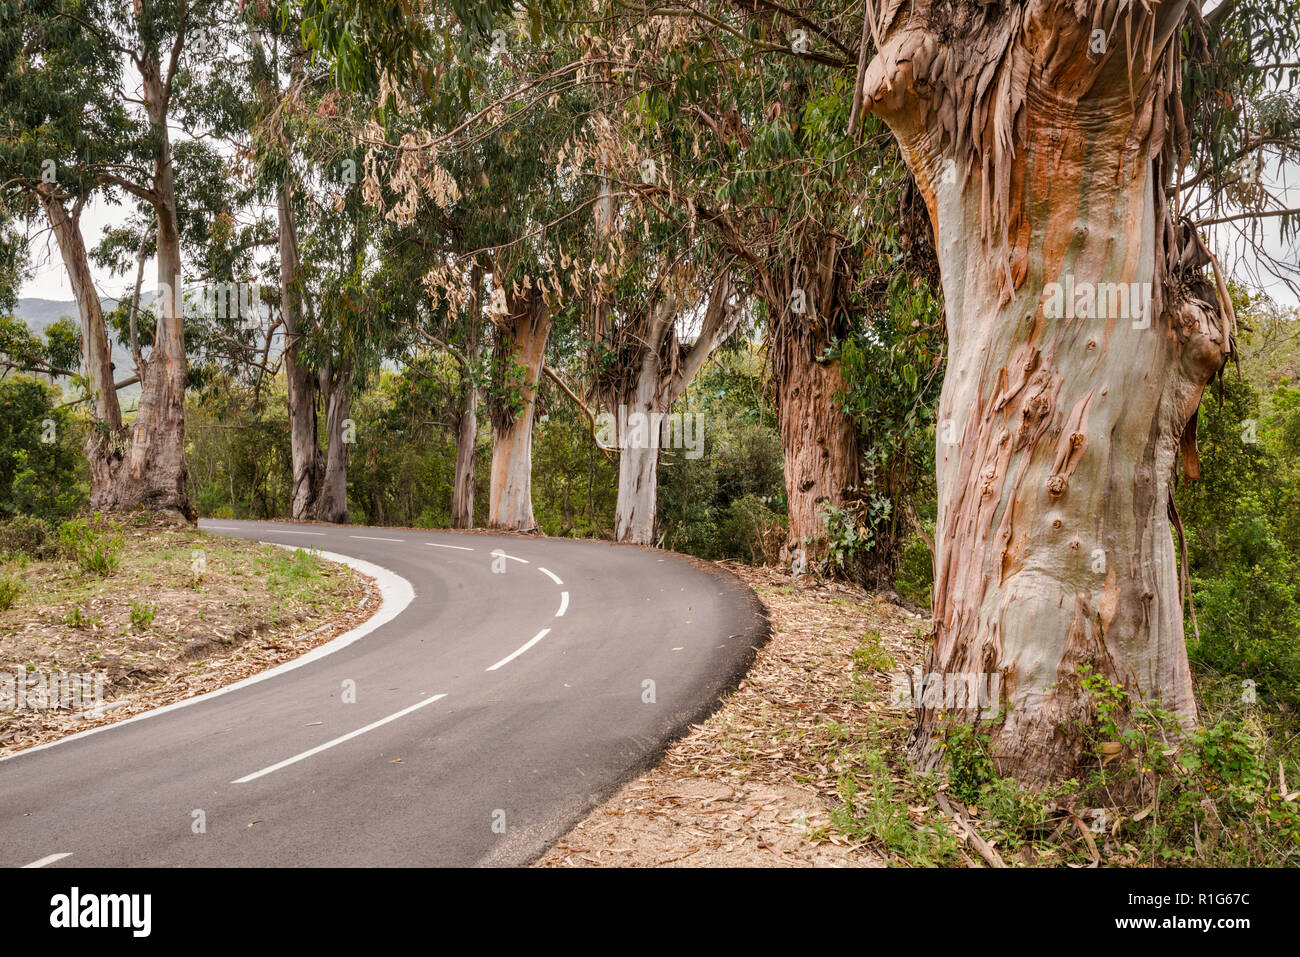 Eucalyptus trees, invasive species brought from Australia, along road D-55 in Chiavari Forest, Corse-du-Sud, Corsica, France - Stock Image